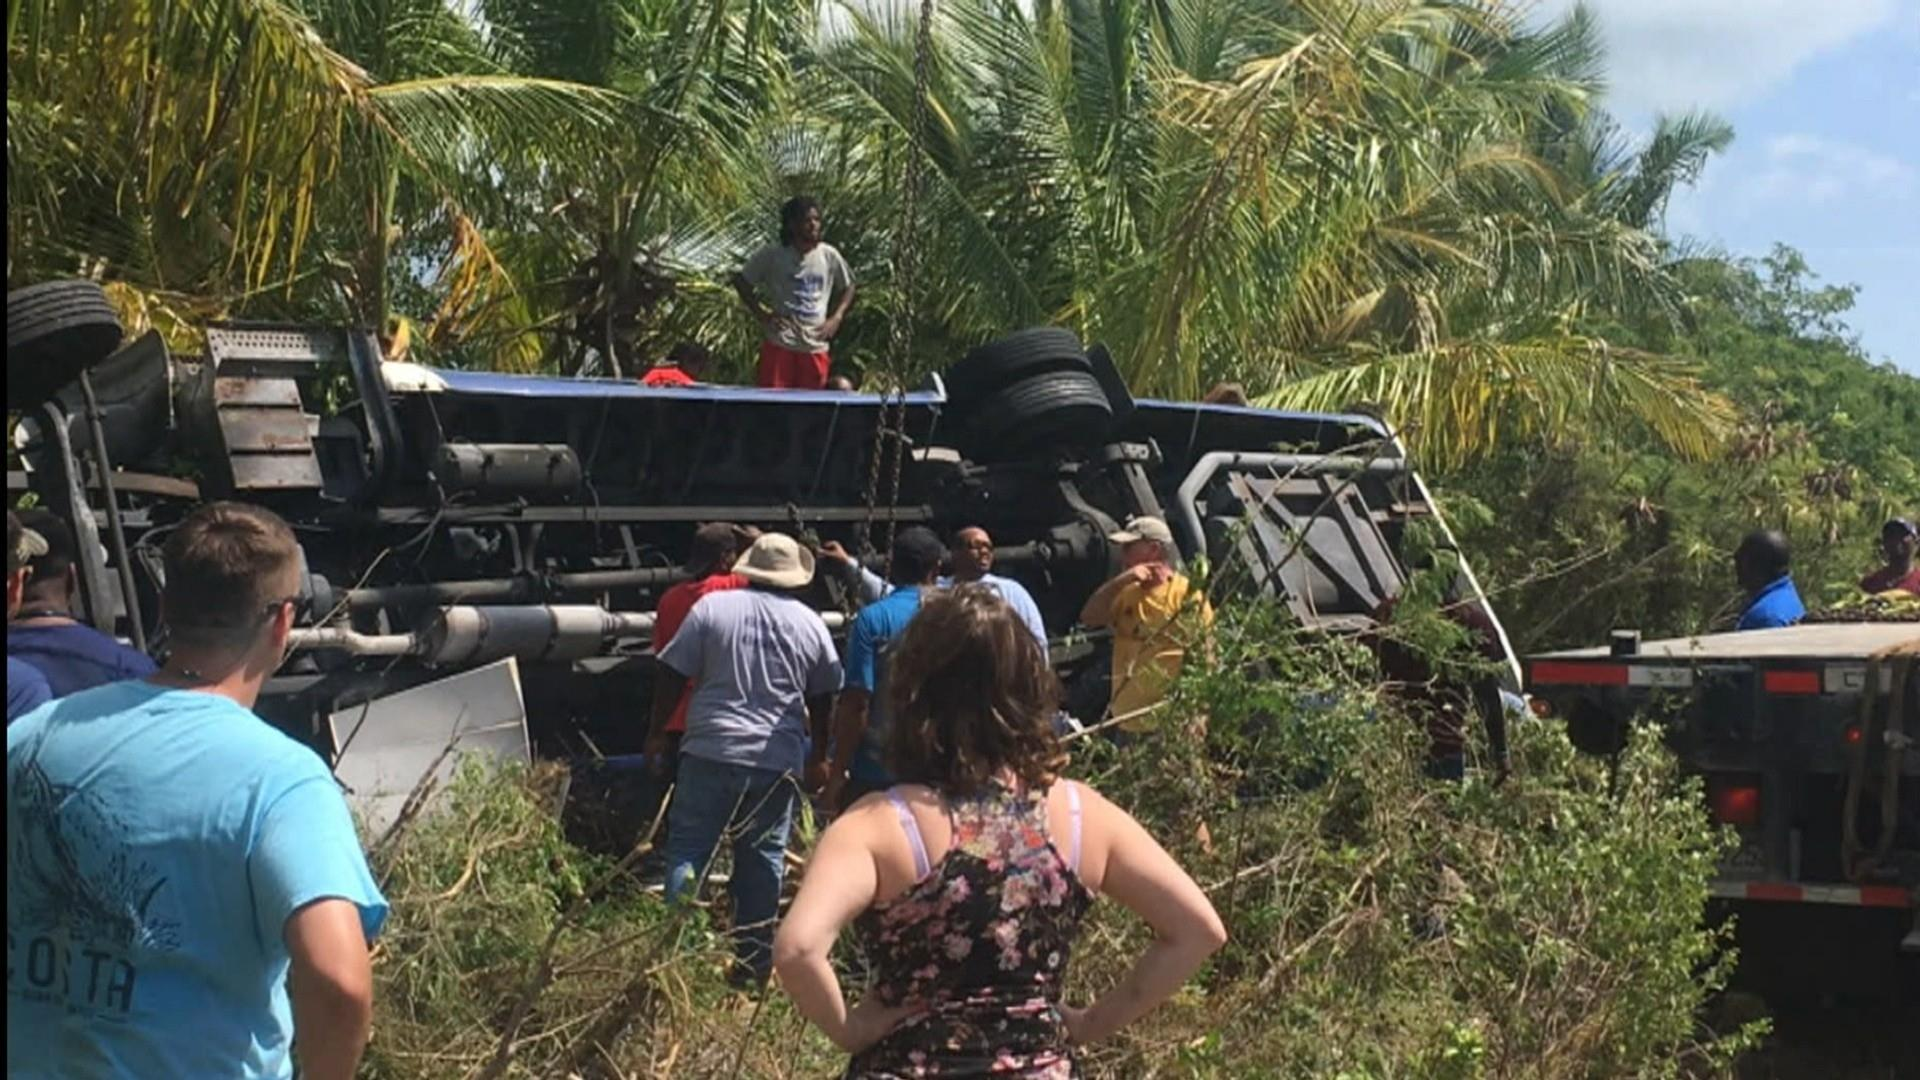 Cruise passengers airlifted to Florida after Bahamas bus crash